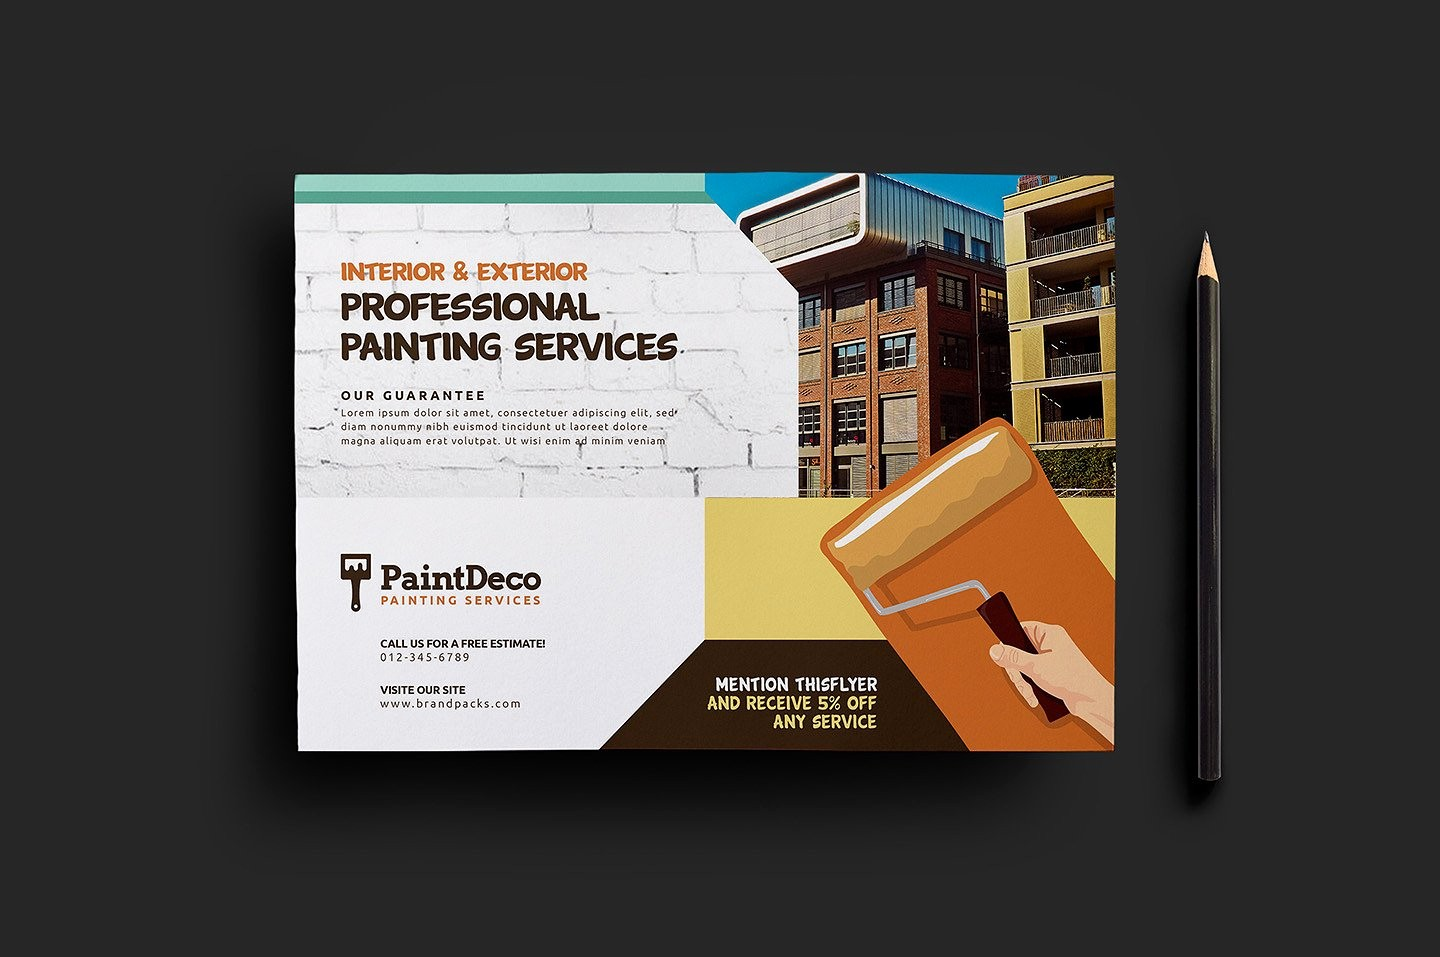 Templates for Flyers and Brochures Best Of Painter & Decorator Flyer Template 2 Flyer Templates